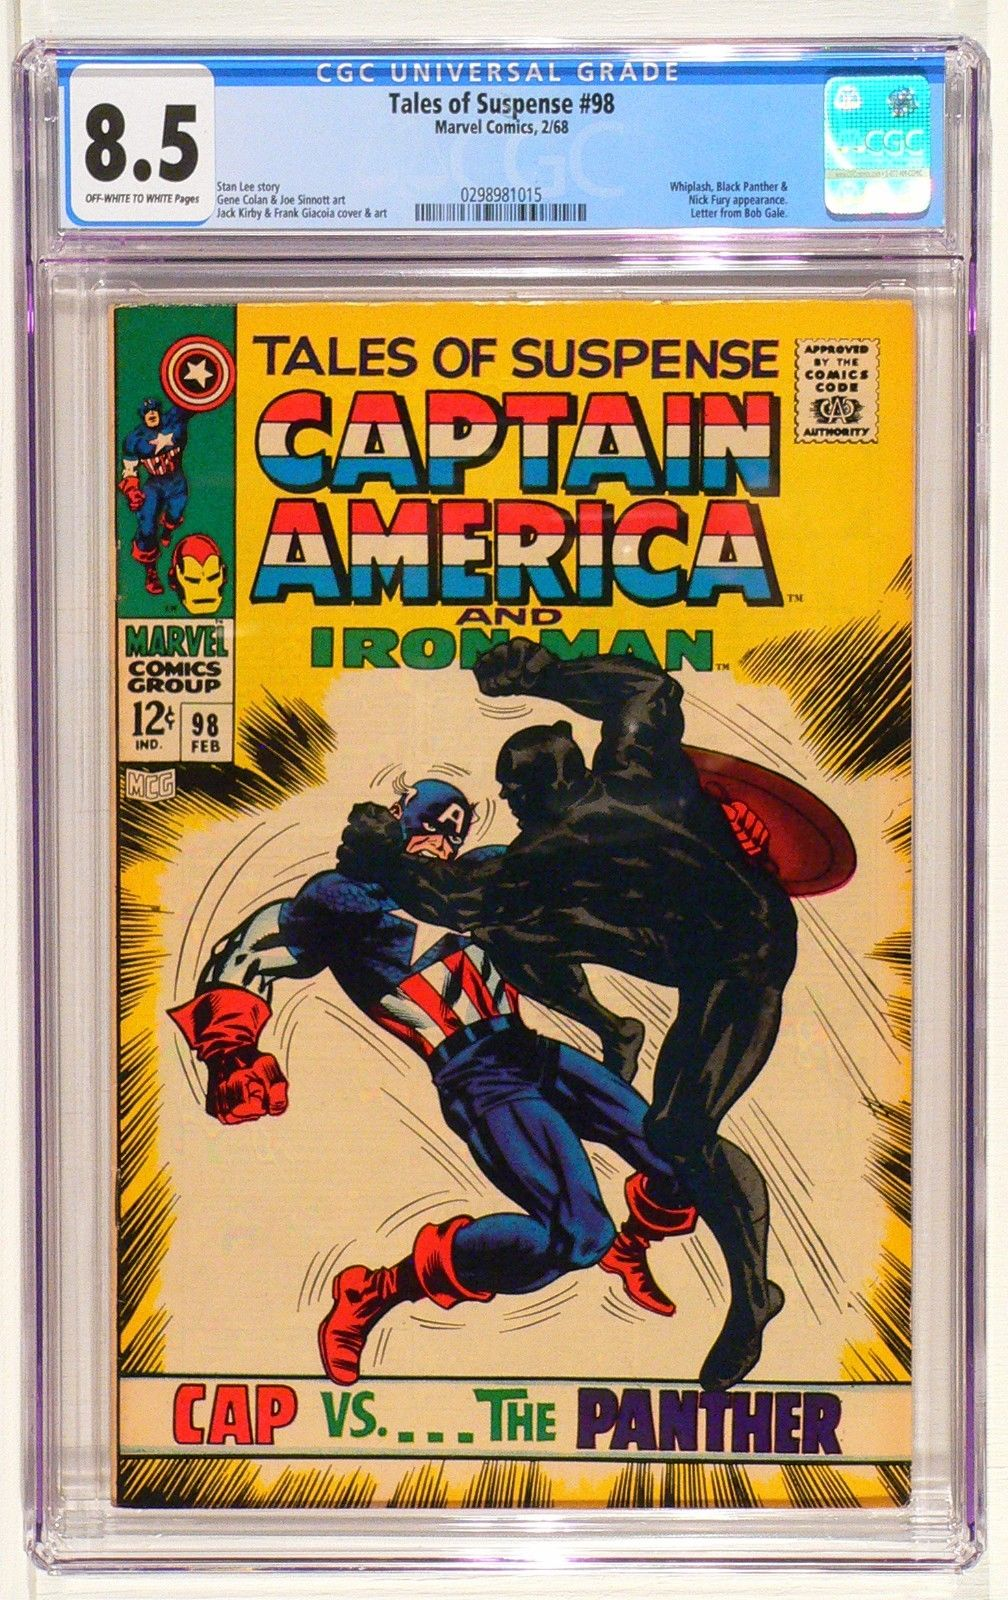 Tales of Suspense #98 Marvel Comic, Kirby CGC 8.5 VF+ Black Panther & Cap A